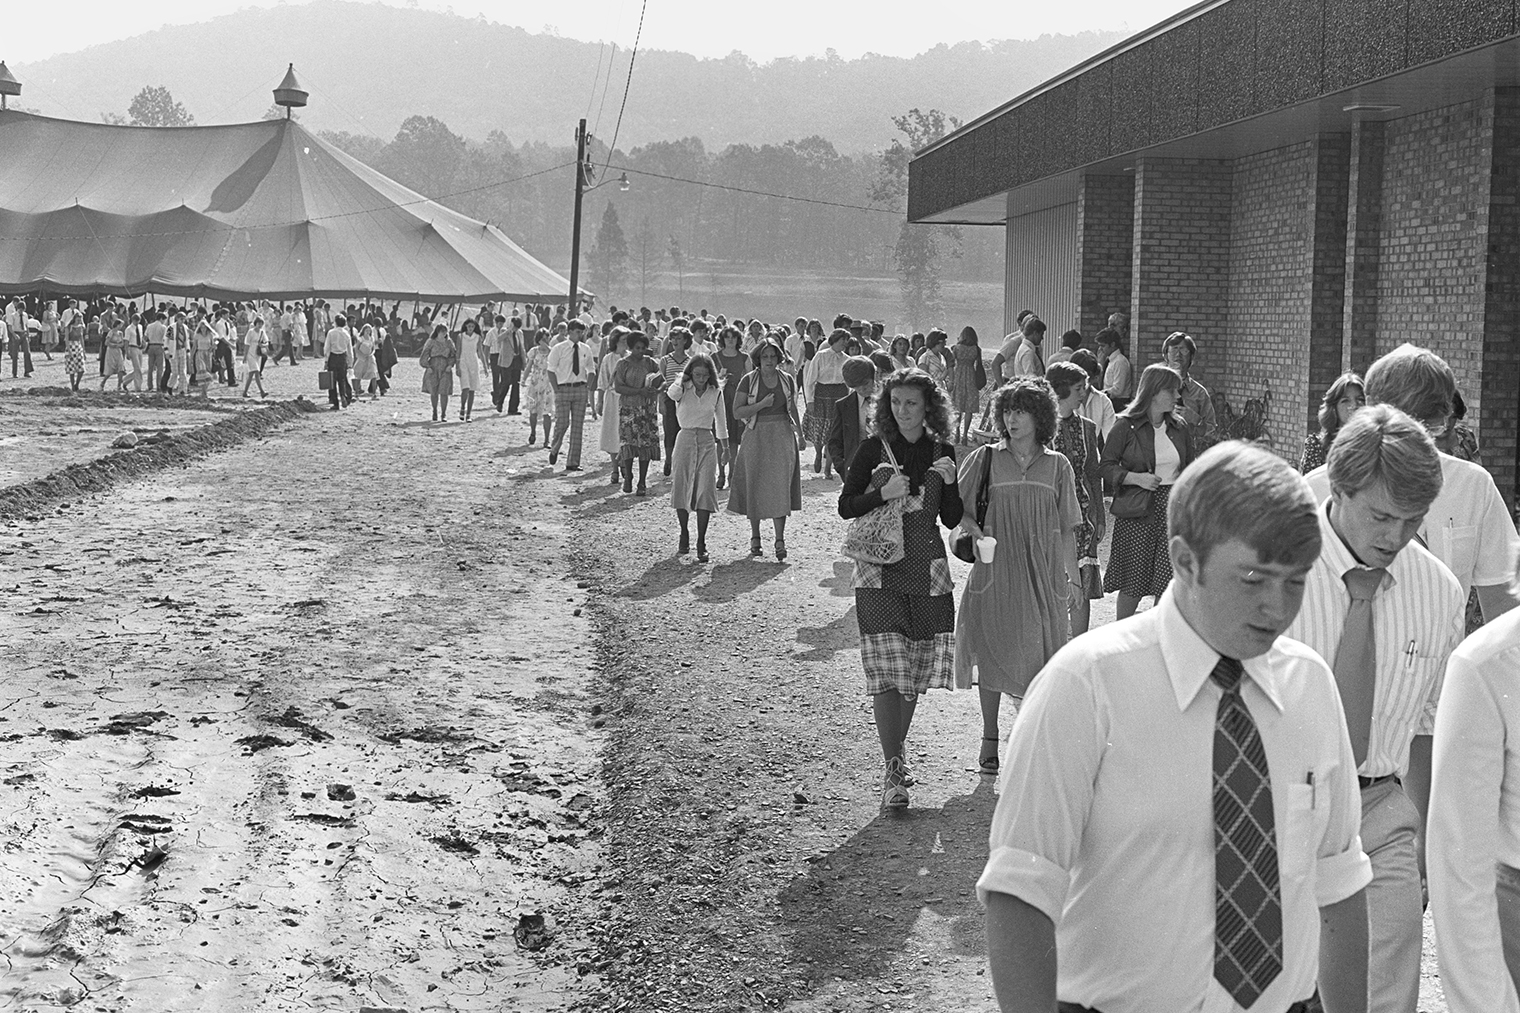 Students make their way out of the tent where chapel service was held in the 1970s.